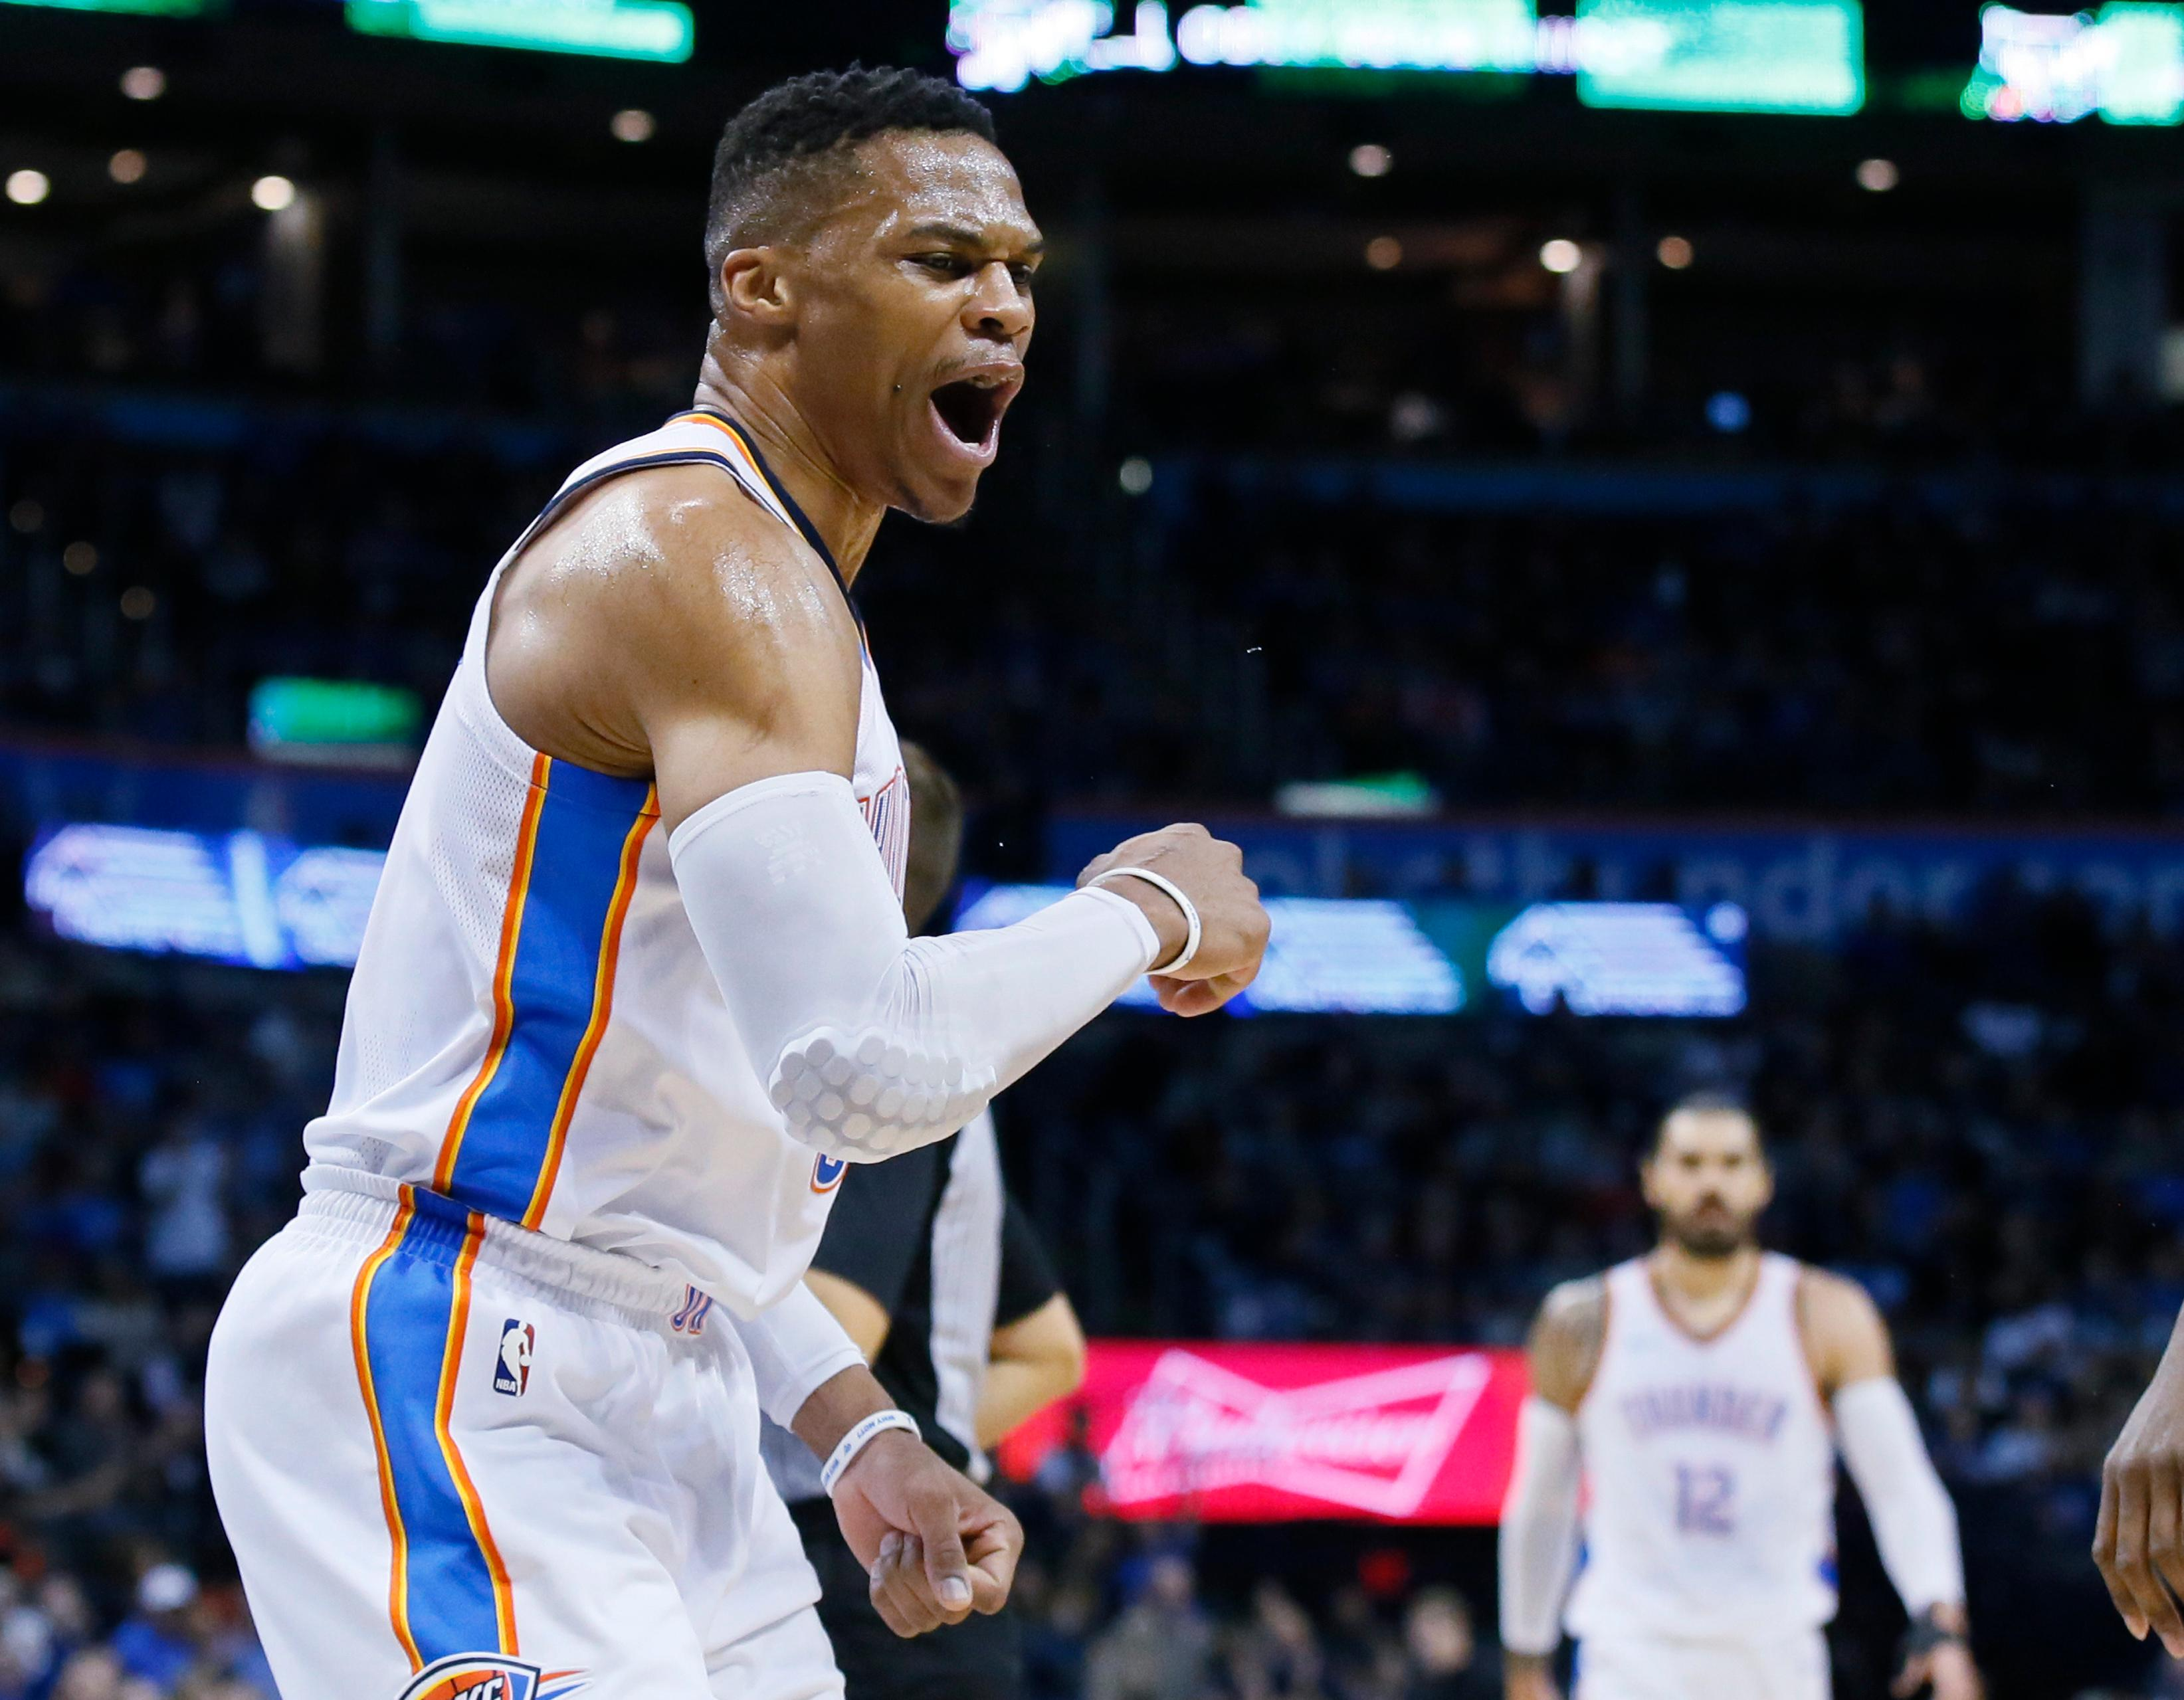 Oklahoma City Thunder guard Russell Westbrook celebrates after a basket by teammate Paul George during the first quarter of an NBA basketball game against the Minnesota Timberwolves in Oklahoma City, Friday, Dec. 1, 2017. (AP Photo/Sue Ogrocki)